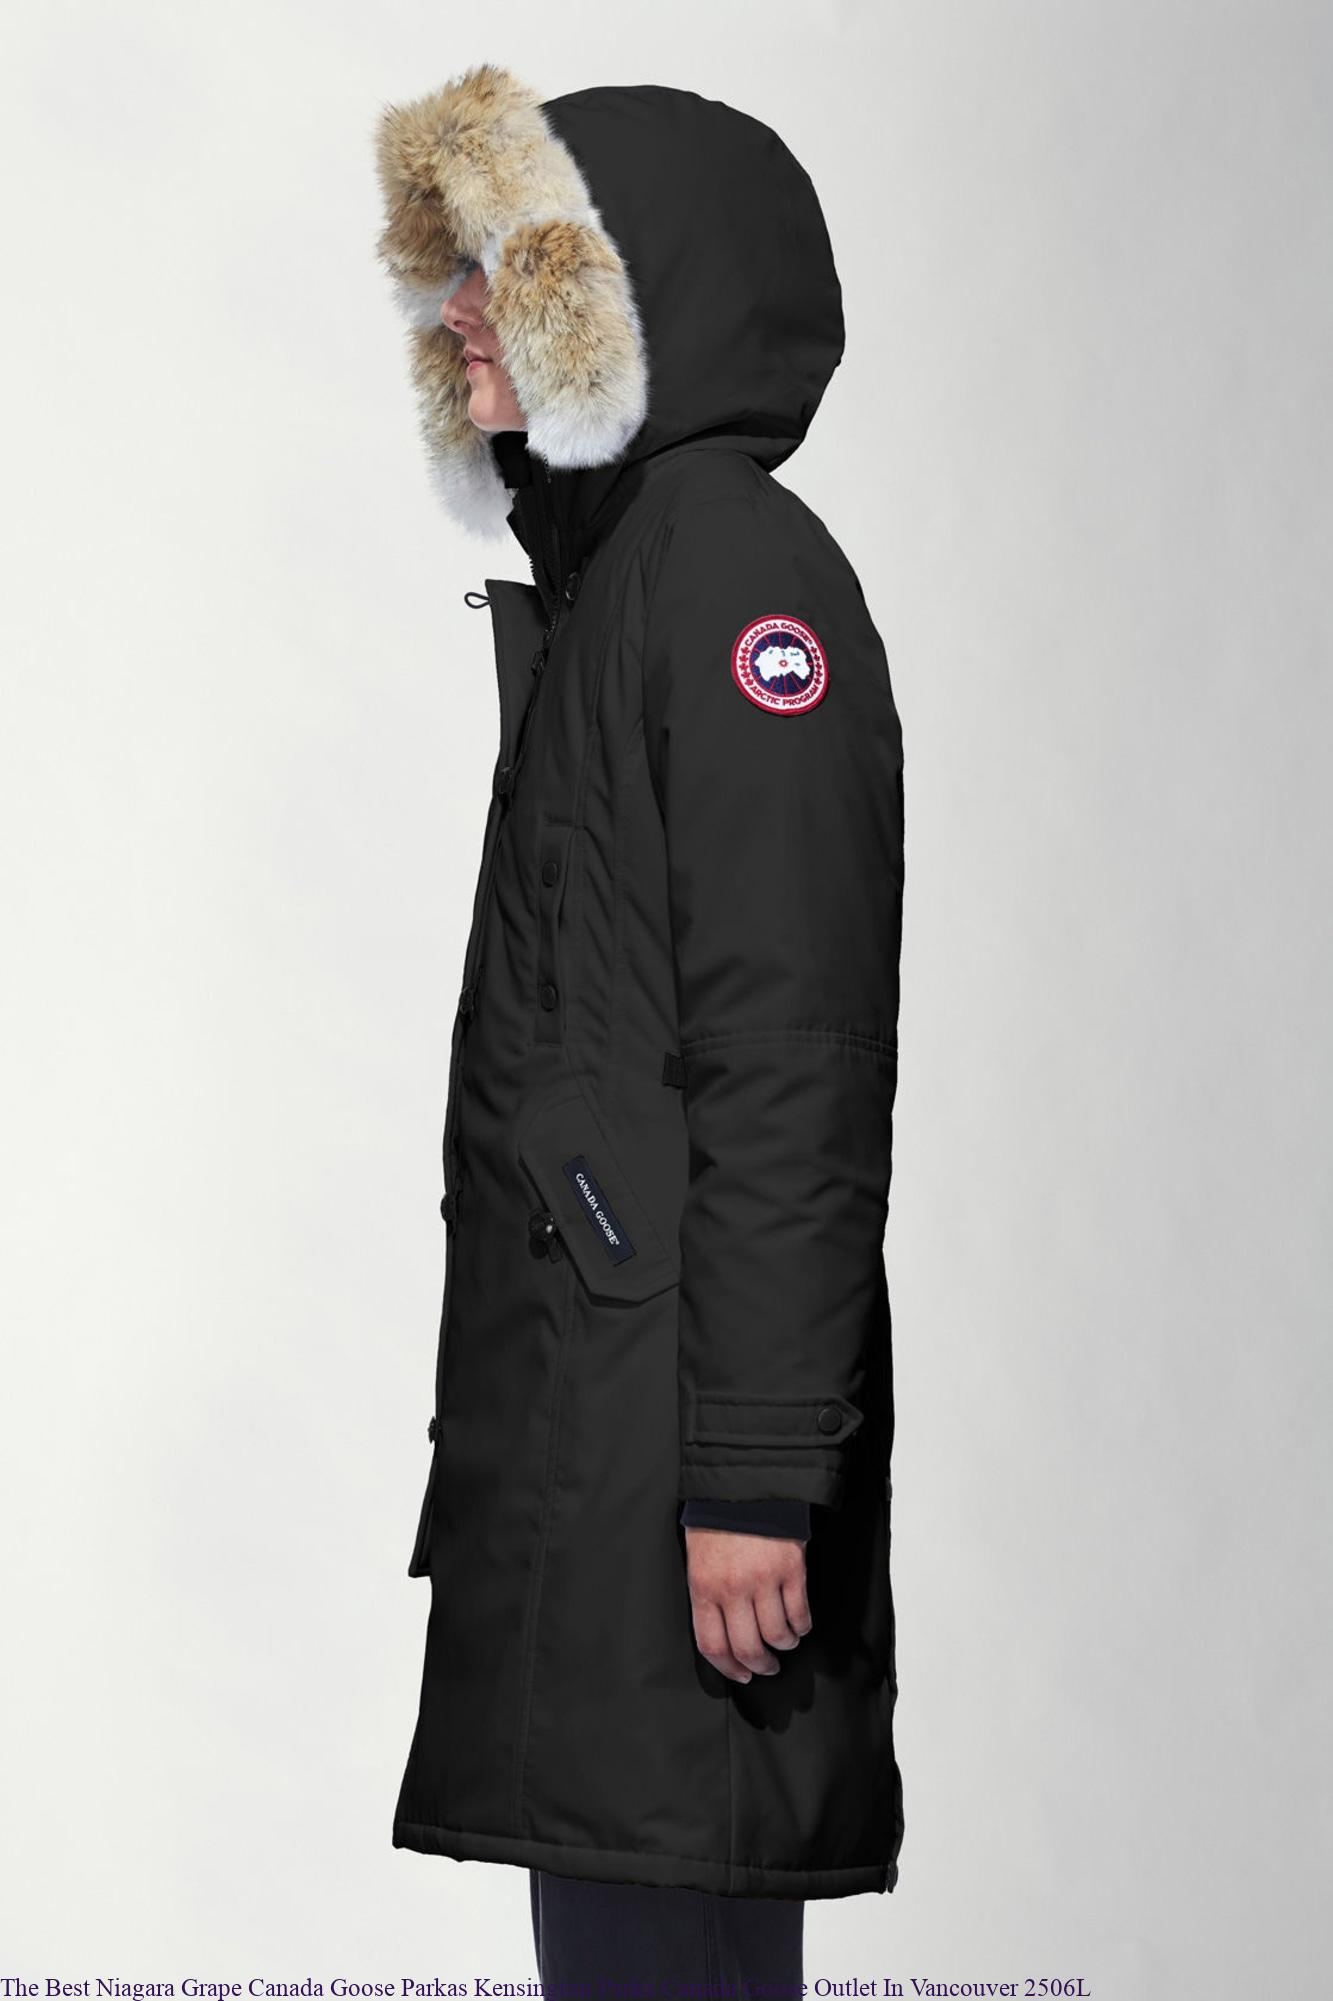 The Best Niagara Grape Canada Goose Parkas Kensington Parka Canada Goose  Outlet In Vancouver 2506L 4981ef216